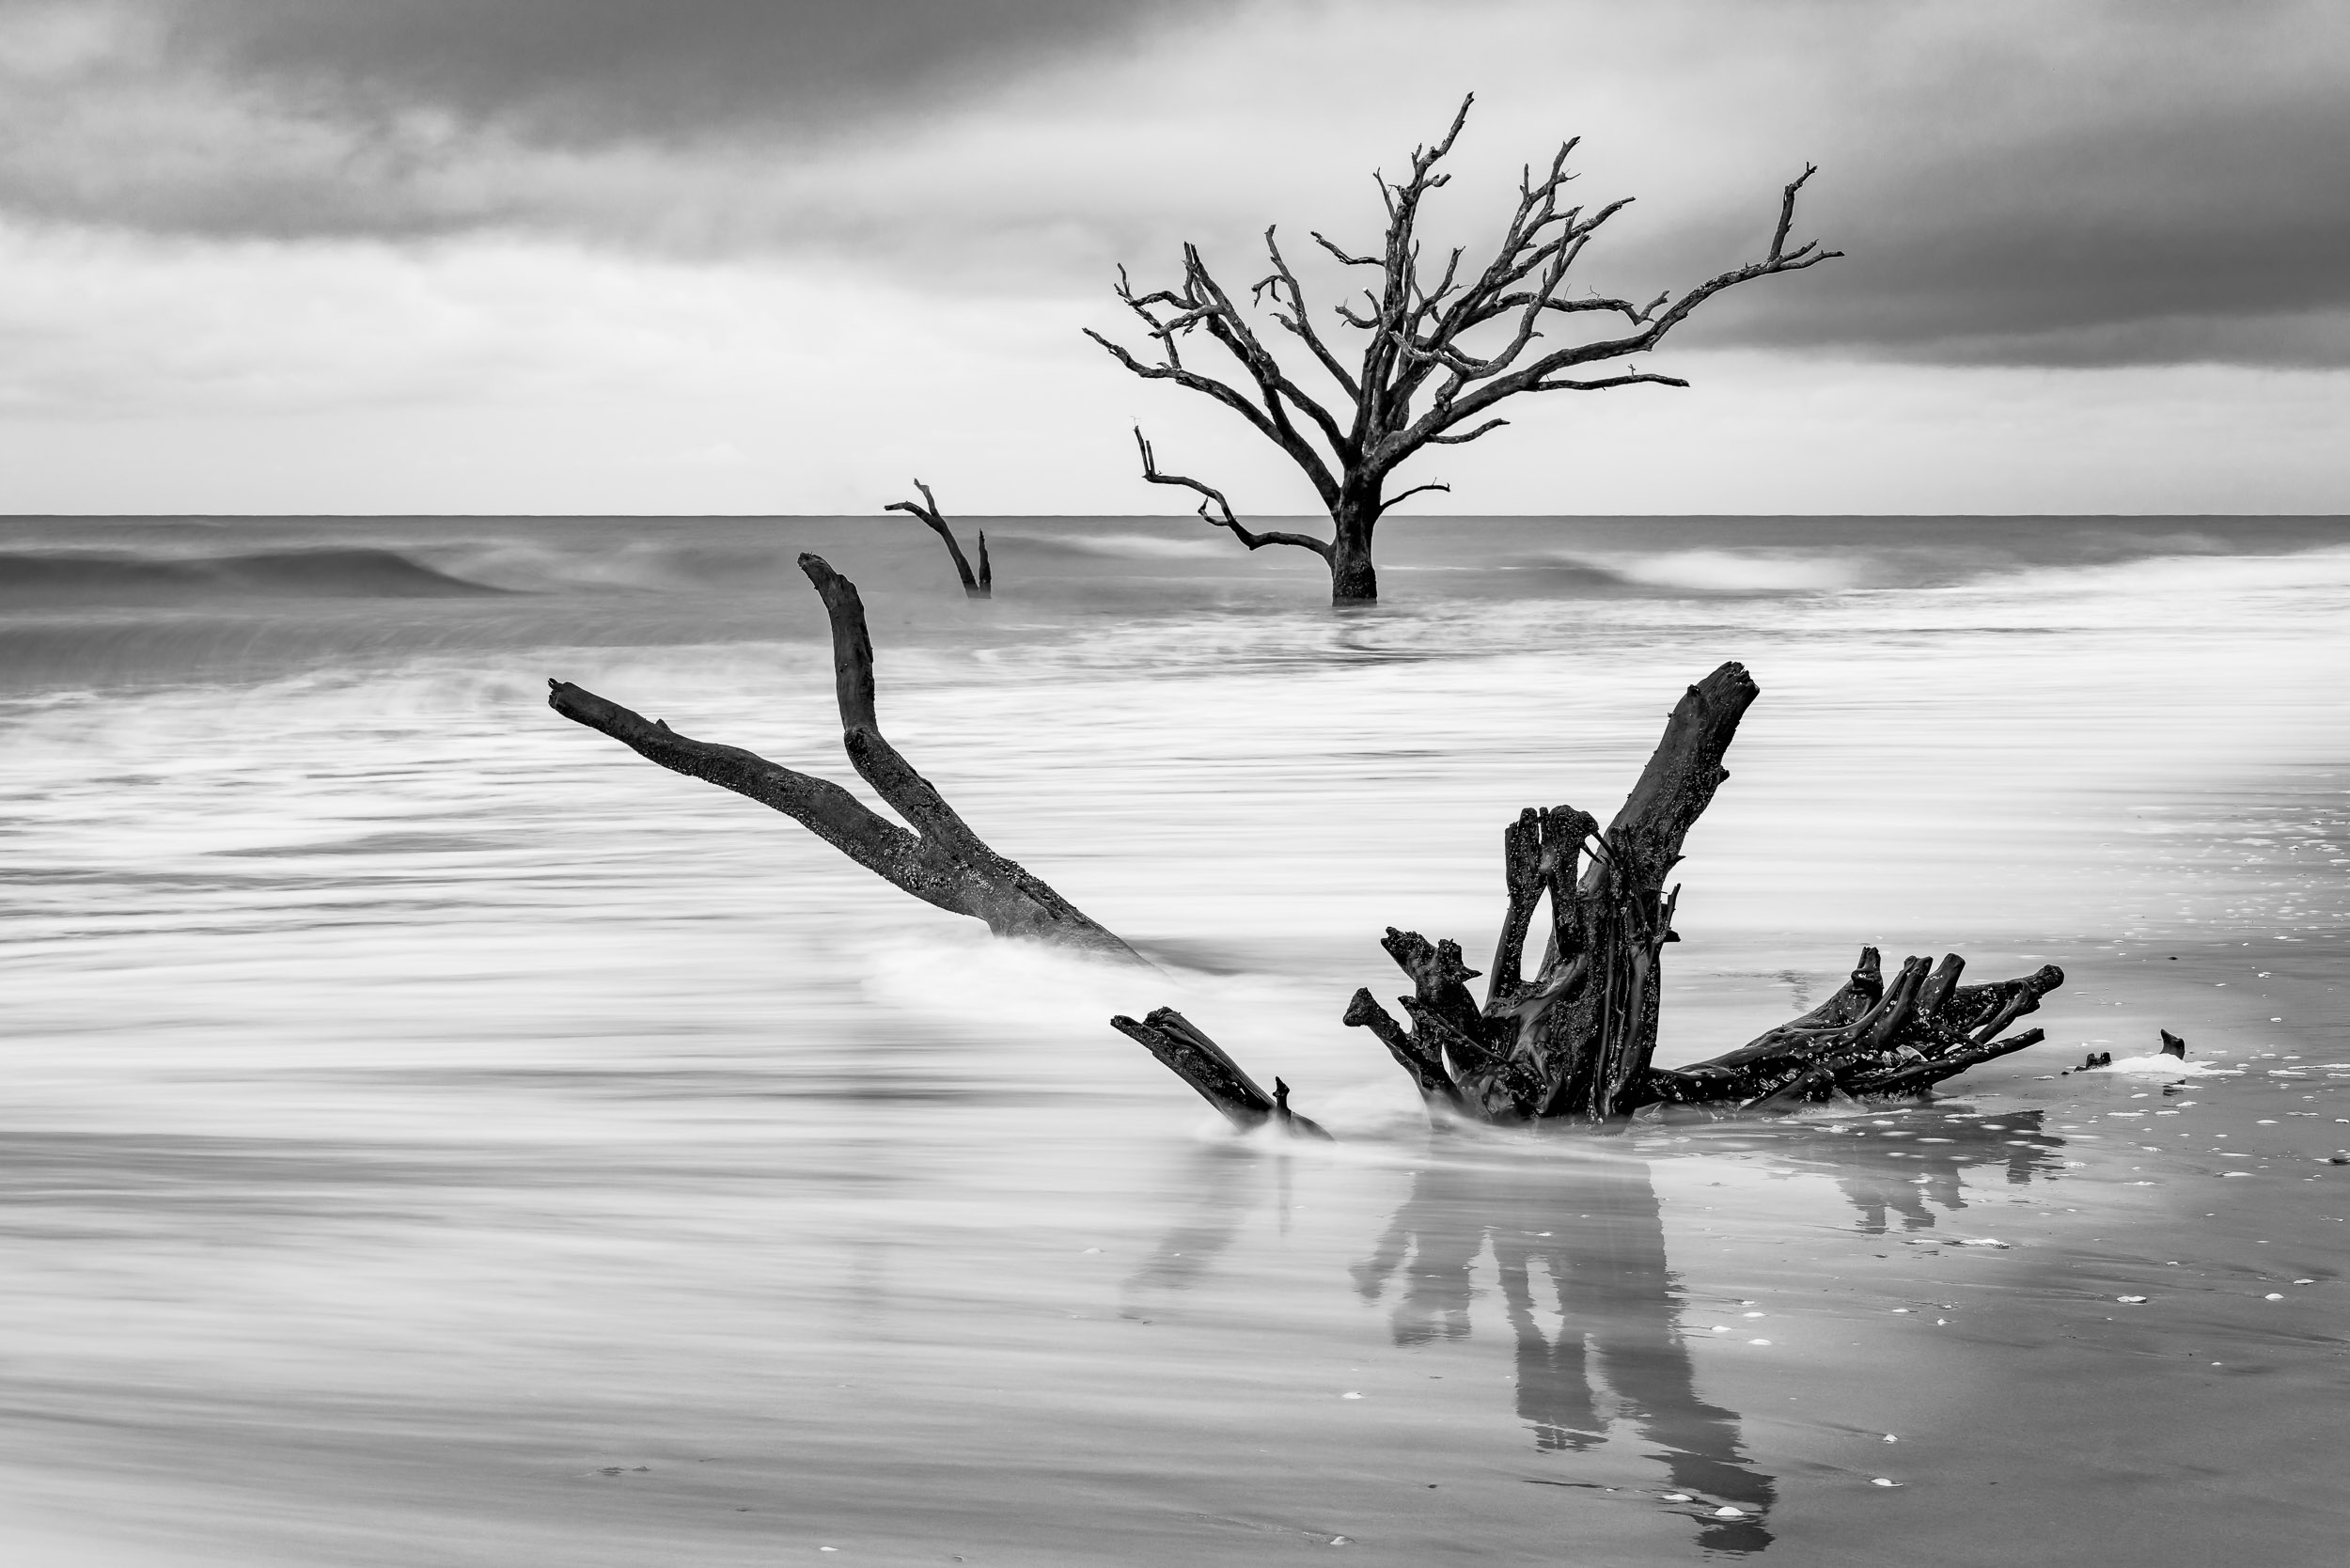 2 seconds to capture long lines as the wave retreats to the ocean at Botany Bay Plantation.